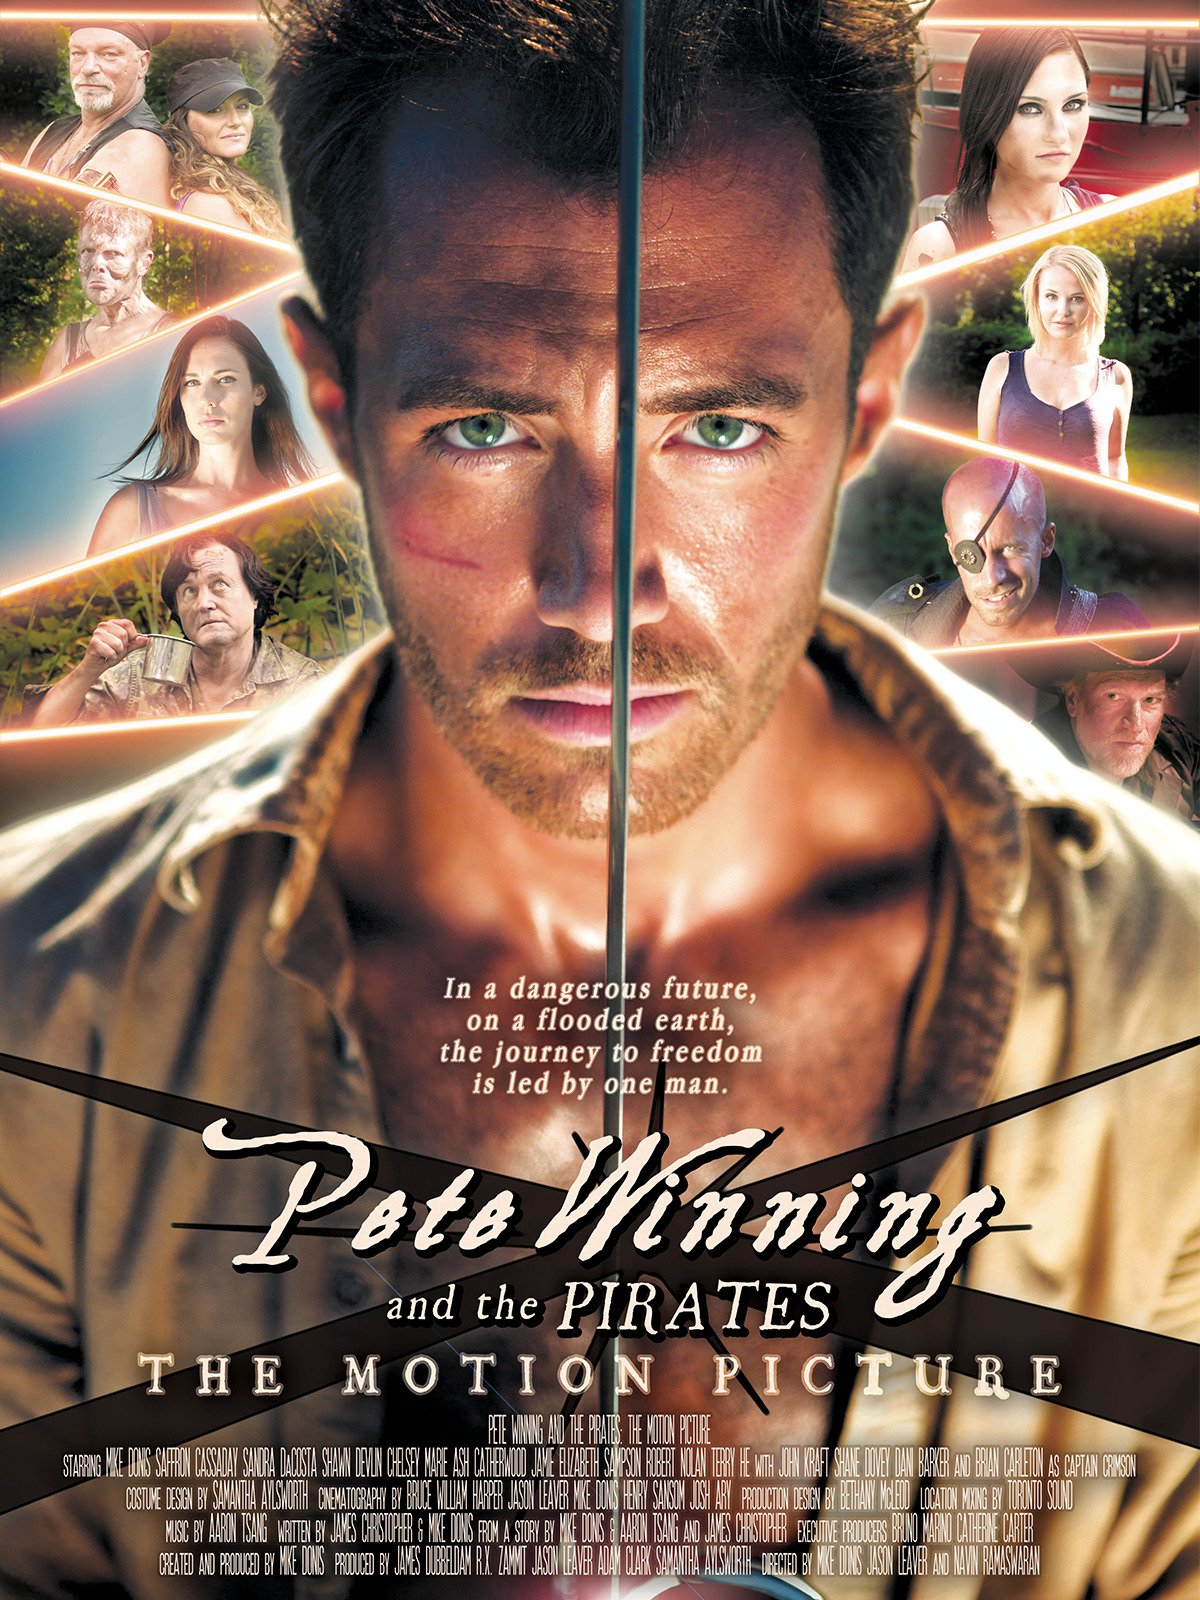 Pete Winning and the Pirates on Amazon Prime Video UK